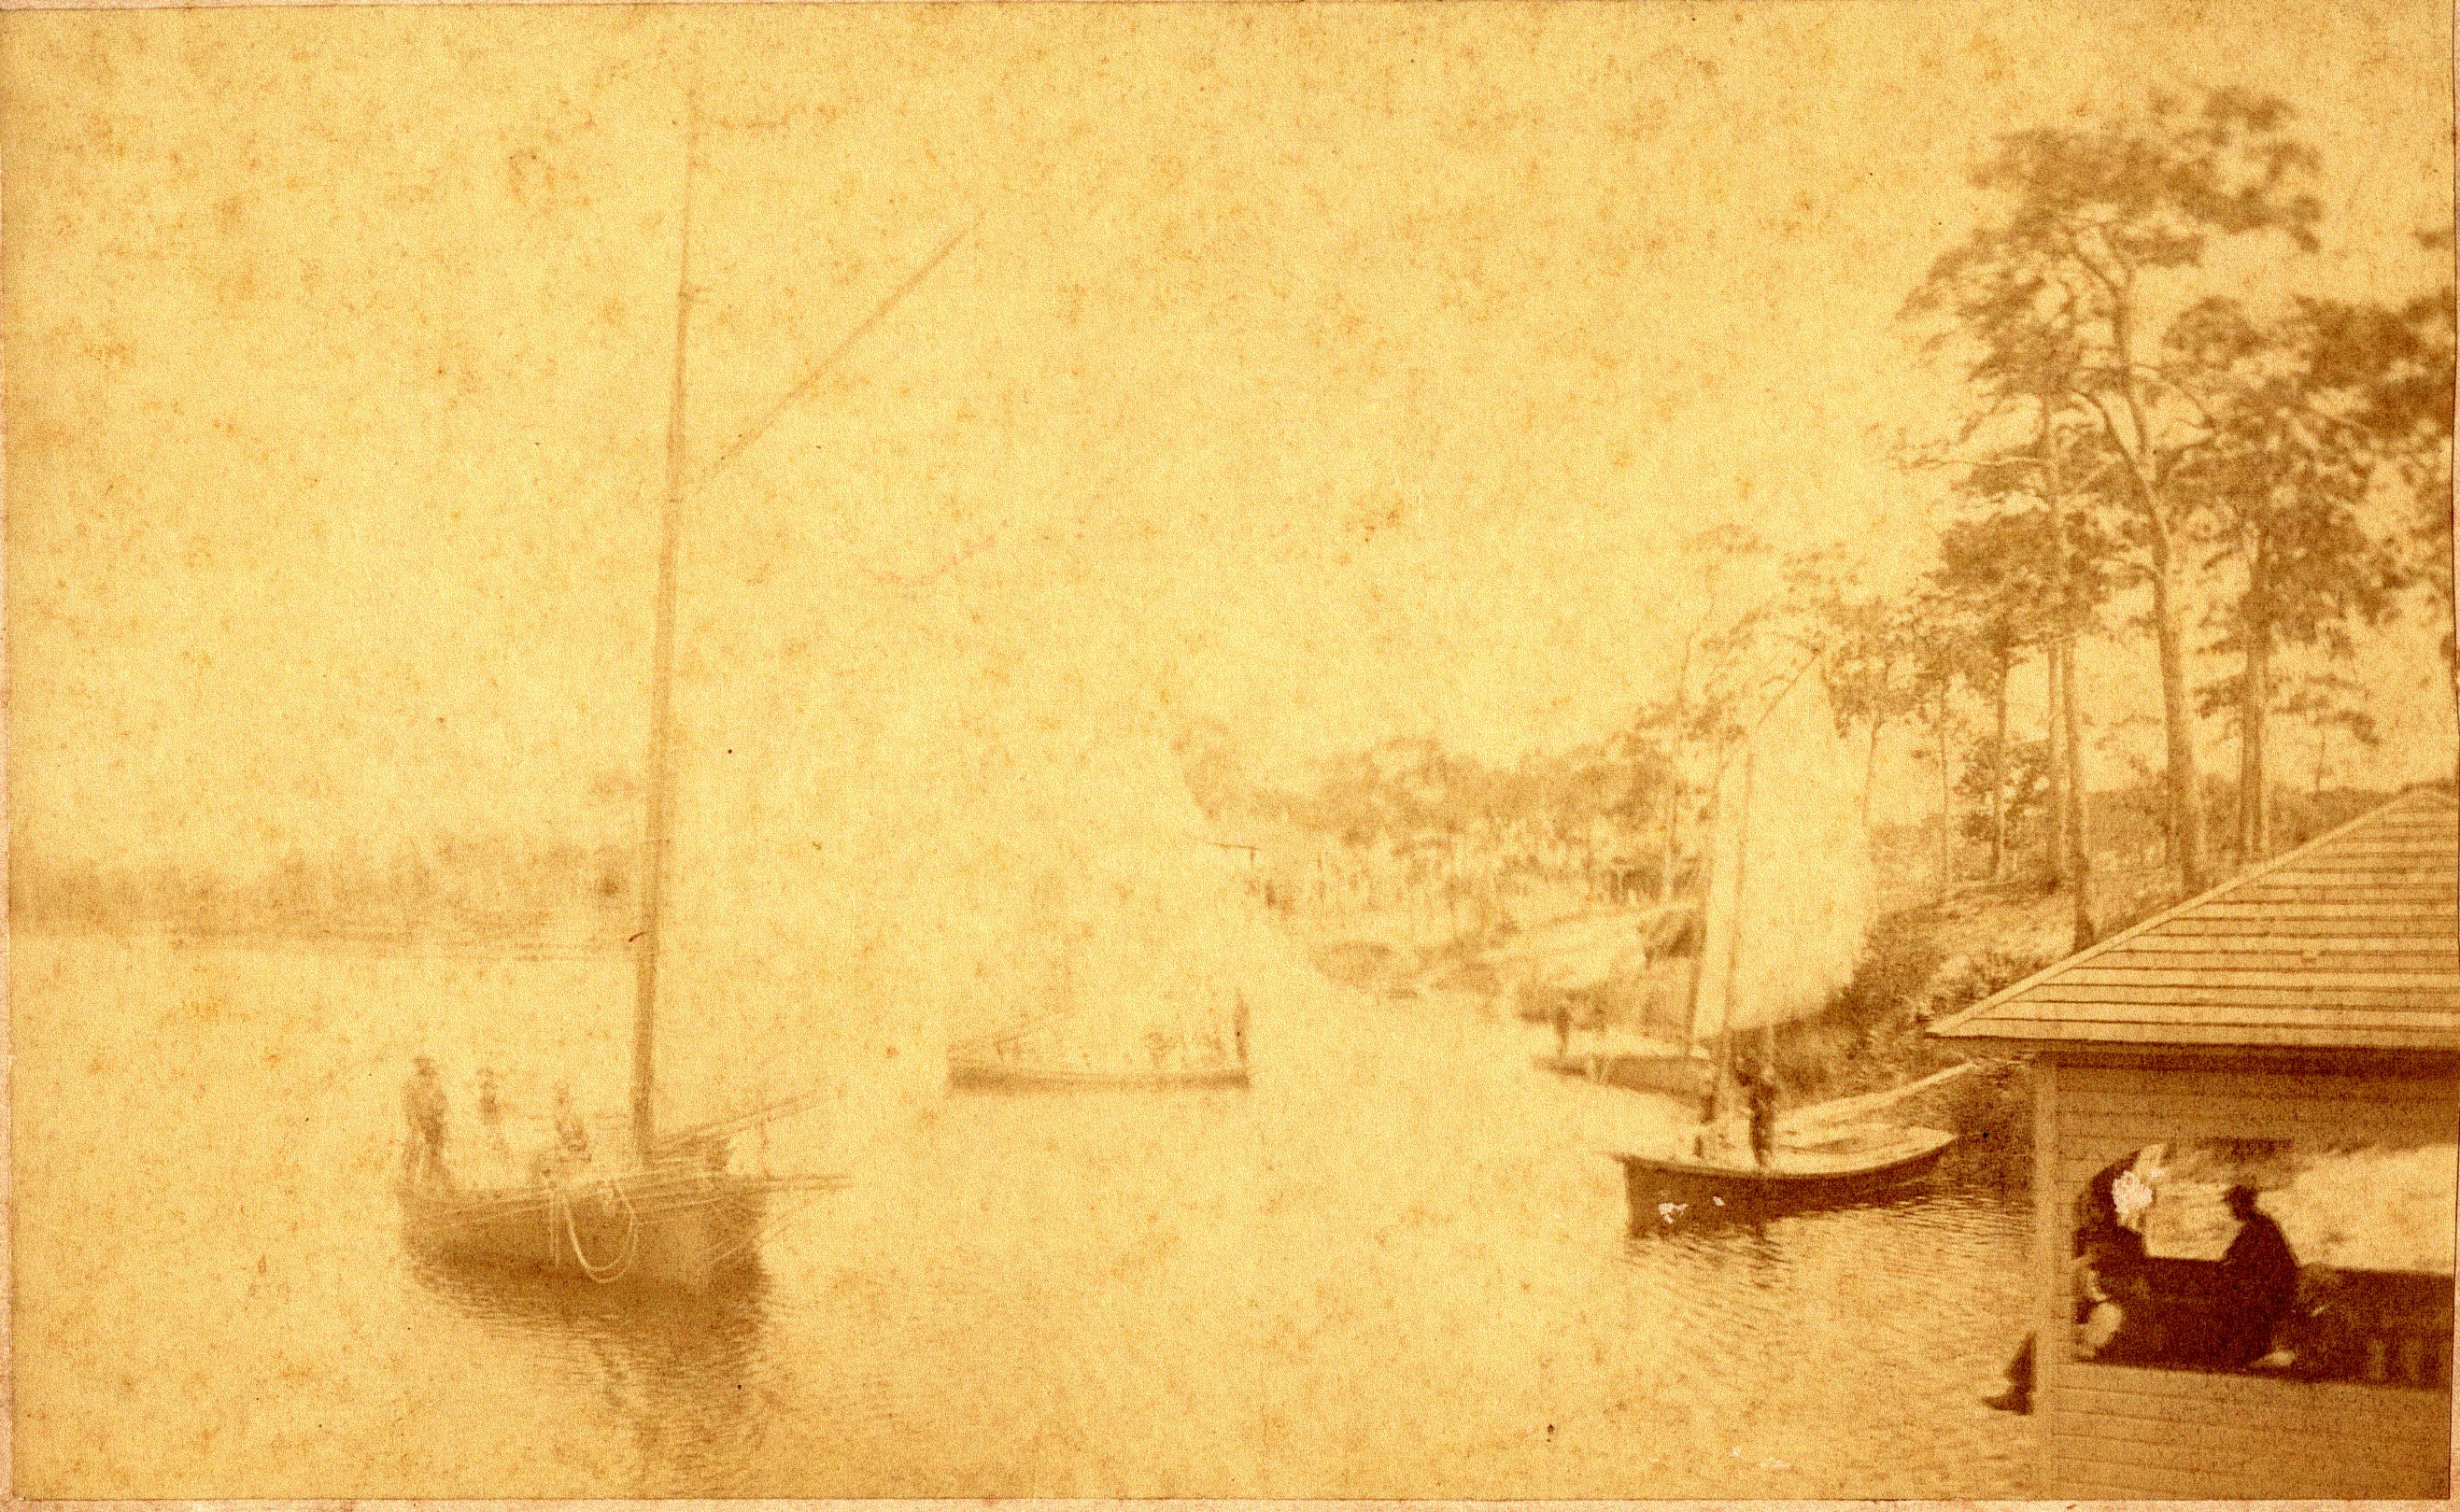 Sloops Tantalus, owned by Joshua Boyer, and Vanessa, owned by Lew Giles, on Spring Bayou in Tarpon Springs, Florida, 1885.